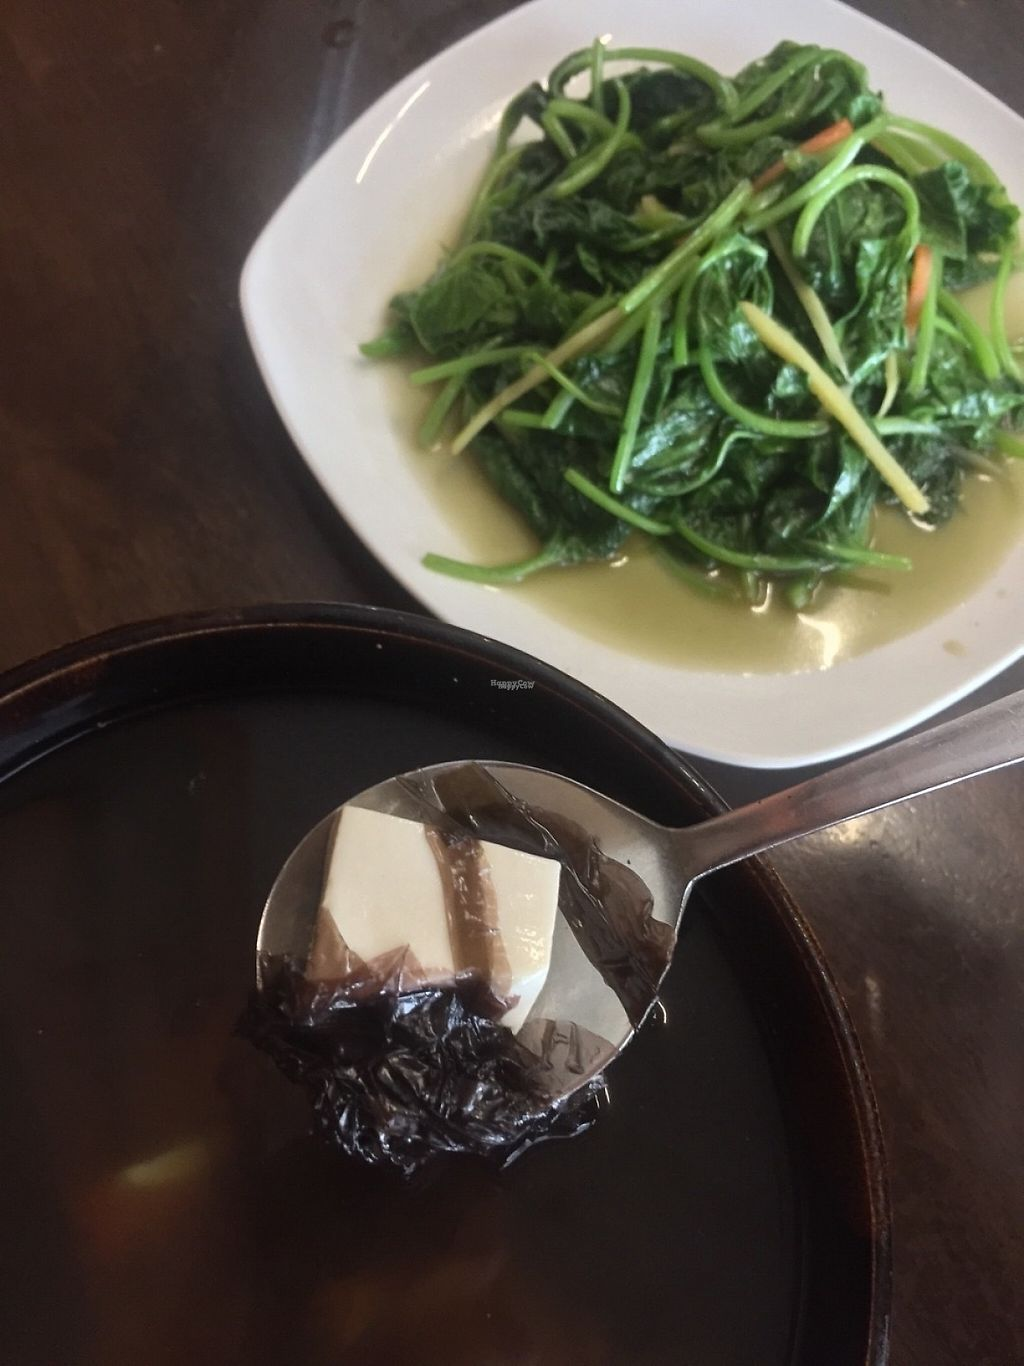 """Photo of Vegan House  by <a href=""""/members/profile/sarah_abdulm"""">sarah_abdulm</a> <br/>Seaweed tofu soup (not that great) and stir fried sweet potato leaves (my favourite local greens!)  <br/> February 26, 2017  - <a href='/contact/abuse/image/64308/230654'>Report</a>"""